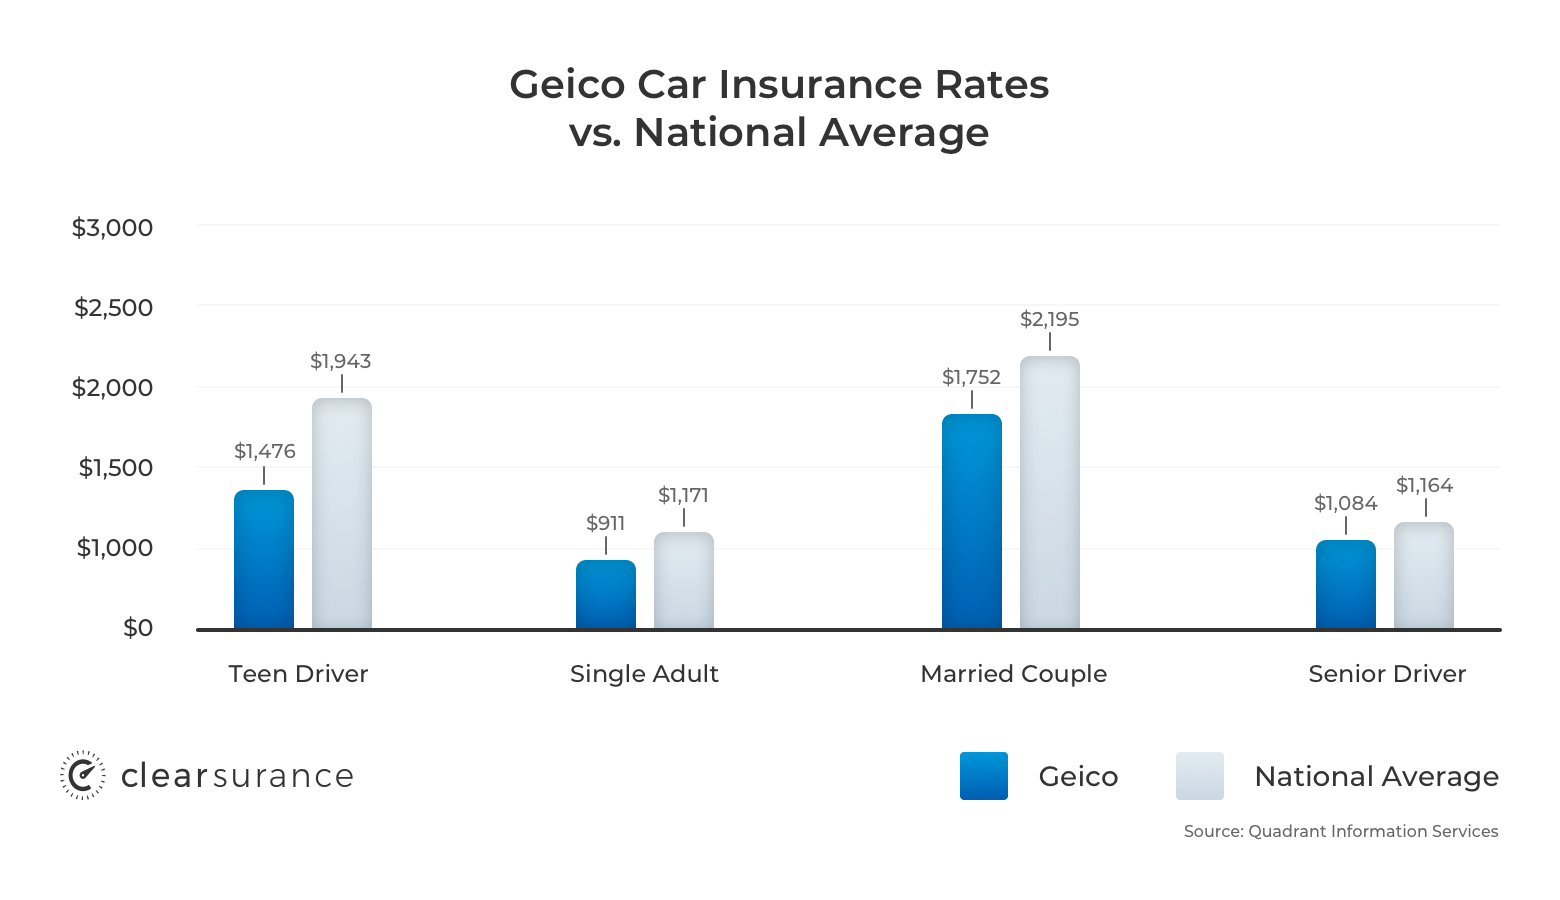 Average GEICO car insurance rates